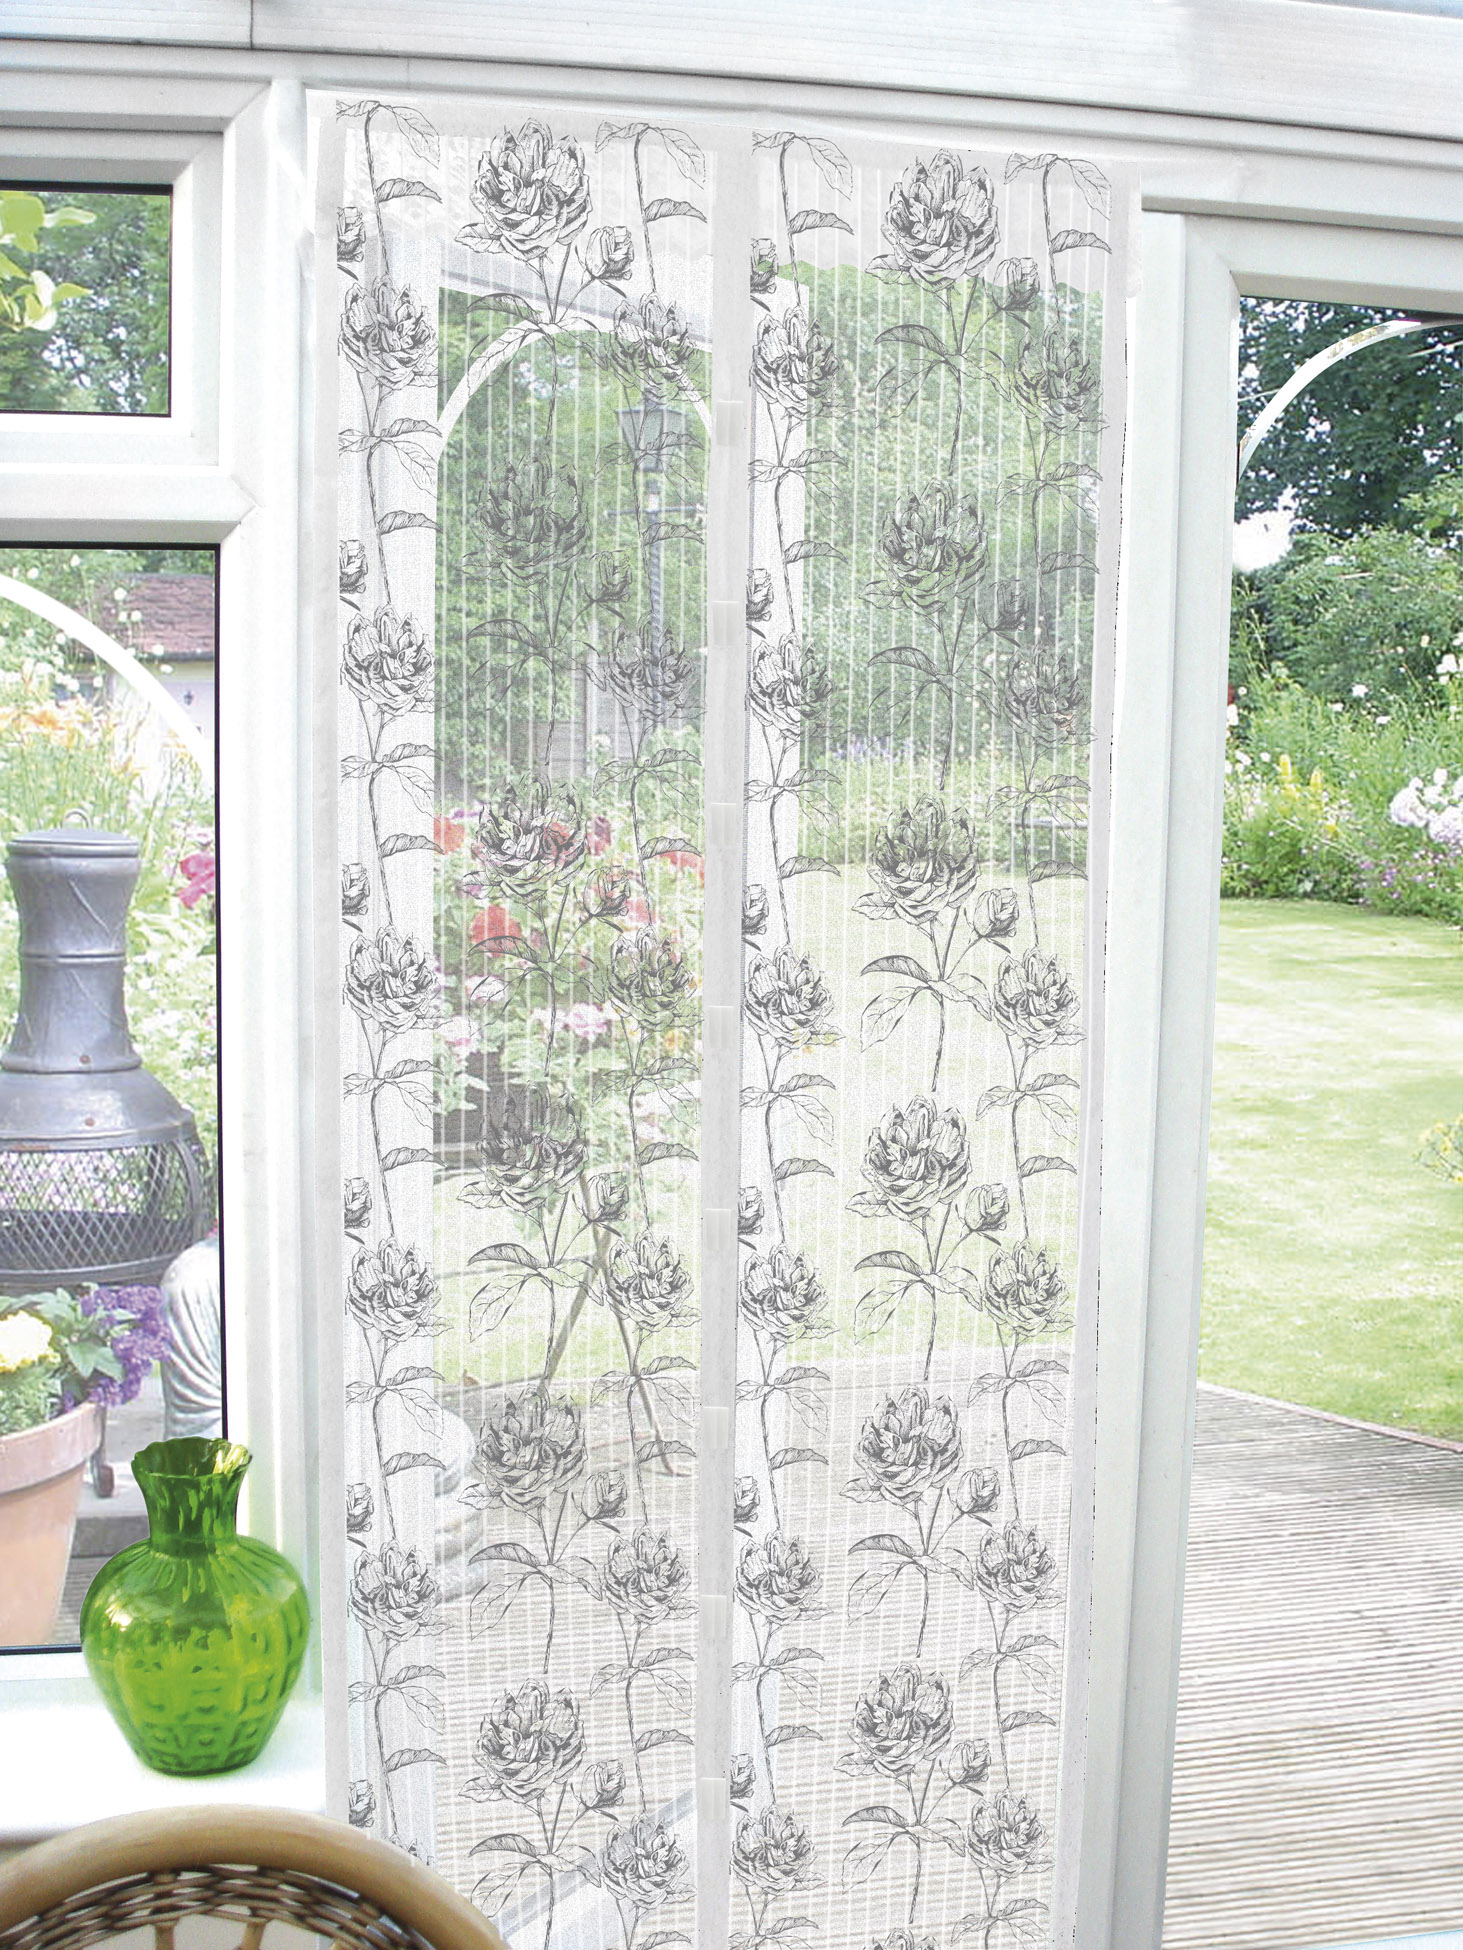 fly bug insect pest door screen guard magnetic curtain. Black Bedroom Furniture Sets. Home Design Ideas